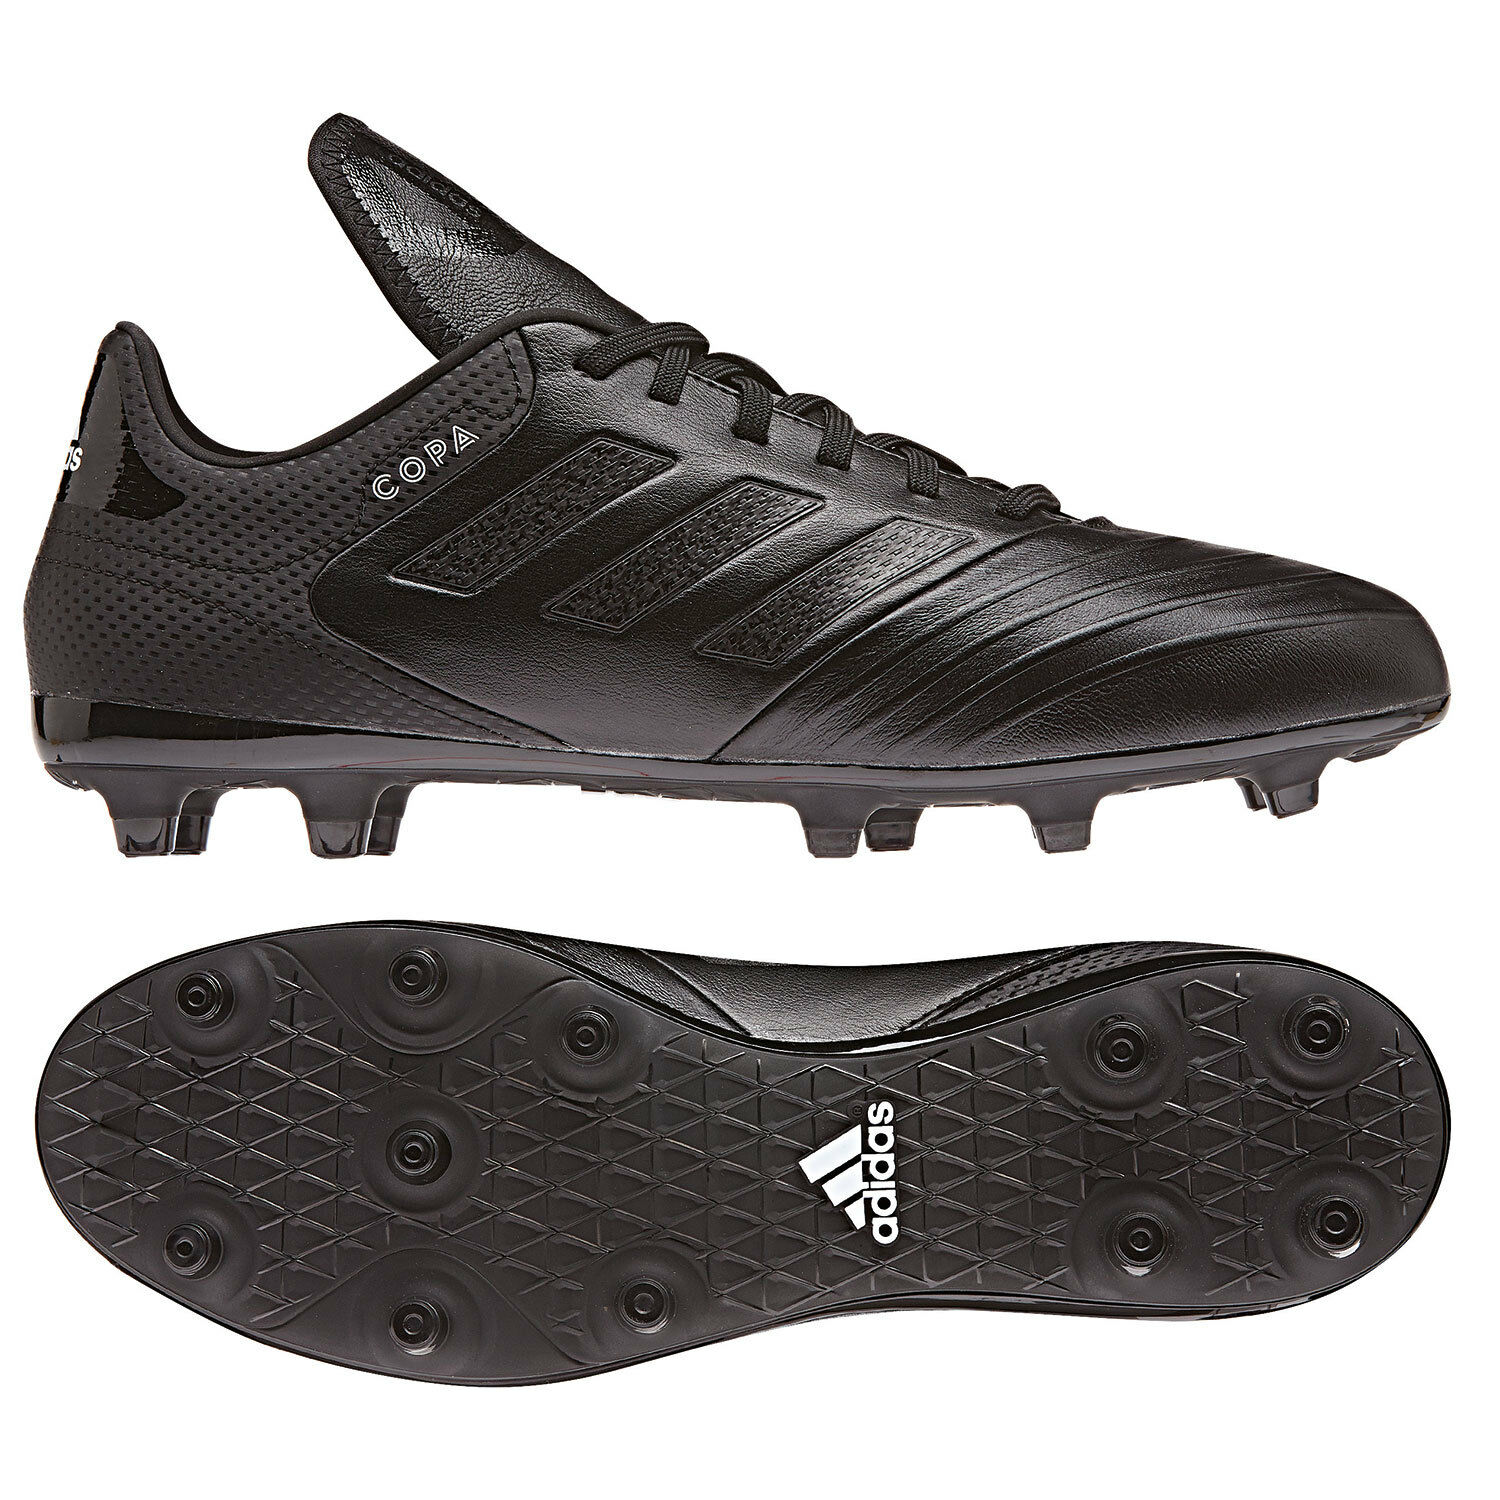 check out 9ae7e b57ef Scarpe da calcio Adidas COPA 18.3 FG DB2460 Nero       Design professionale  89f481